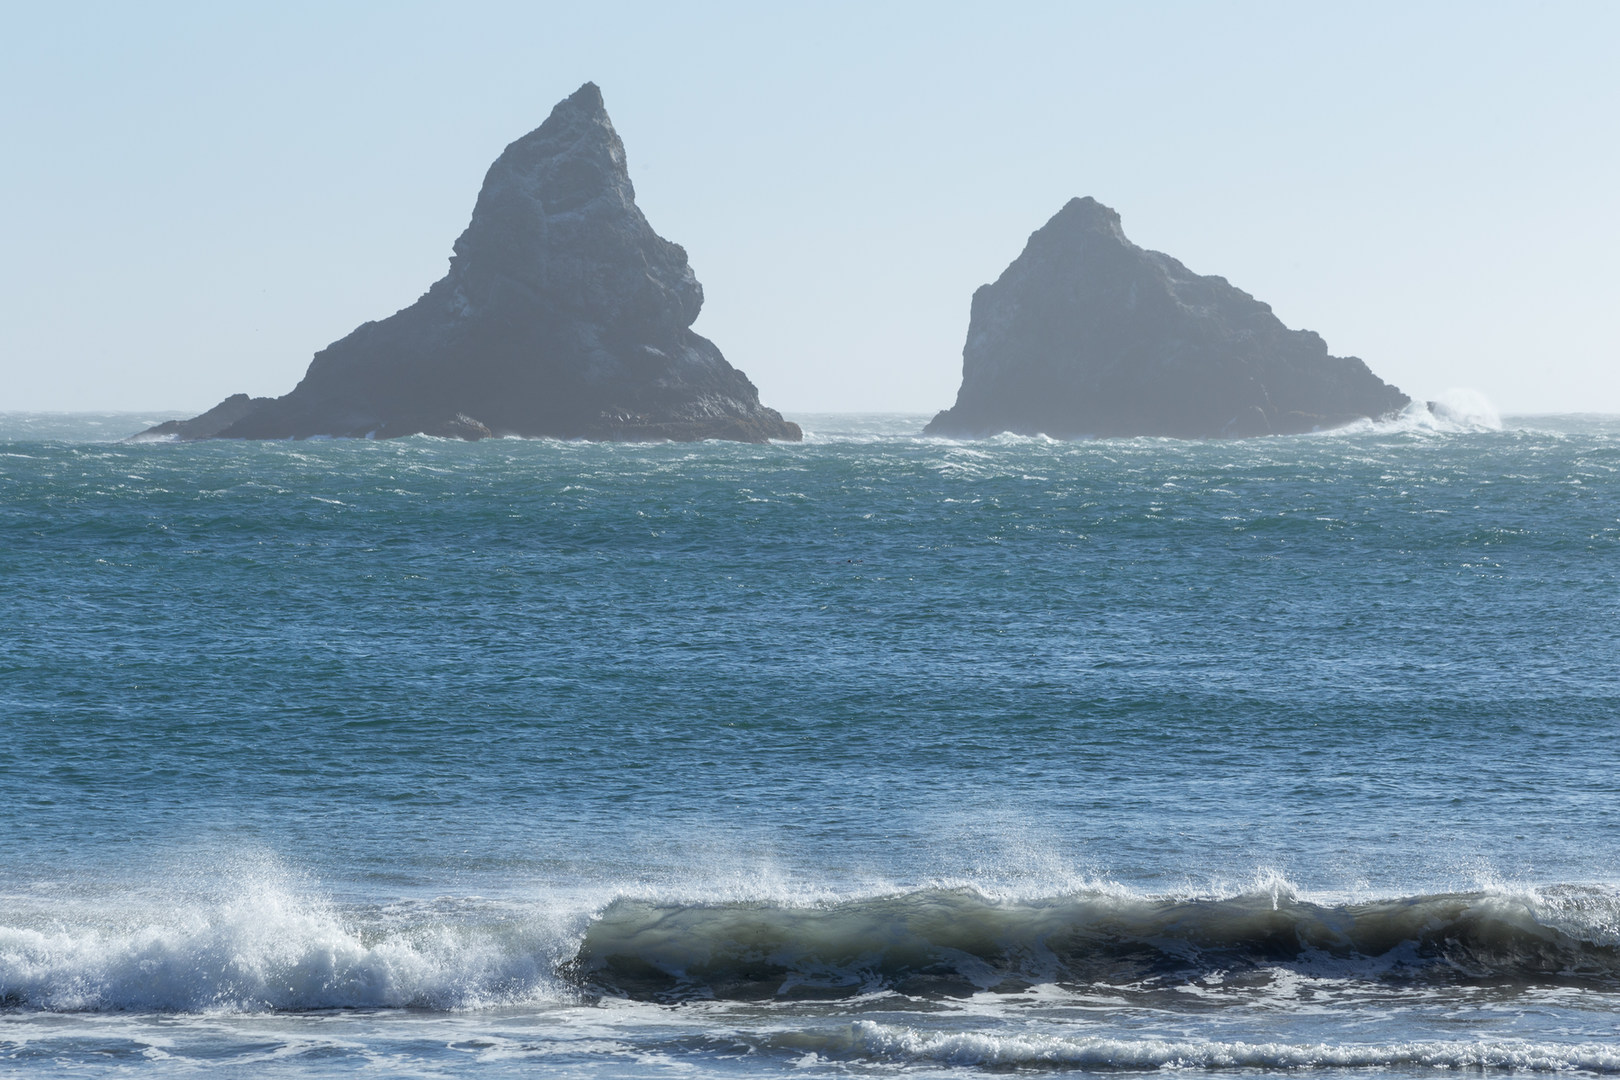 Lone A Wave Crashes At Ranch Beach With Jagged Sea Stacks In The Distance